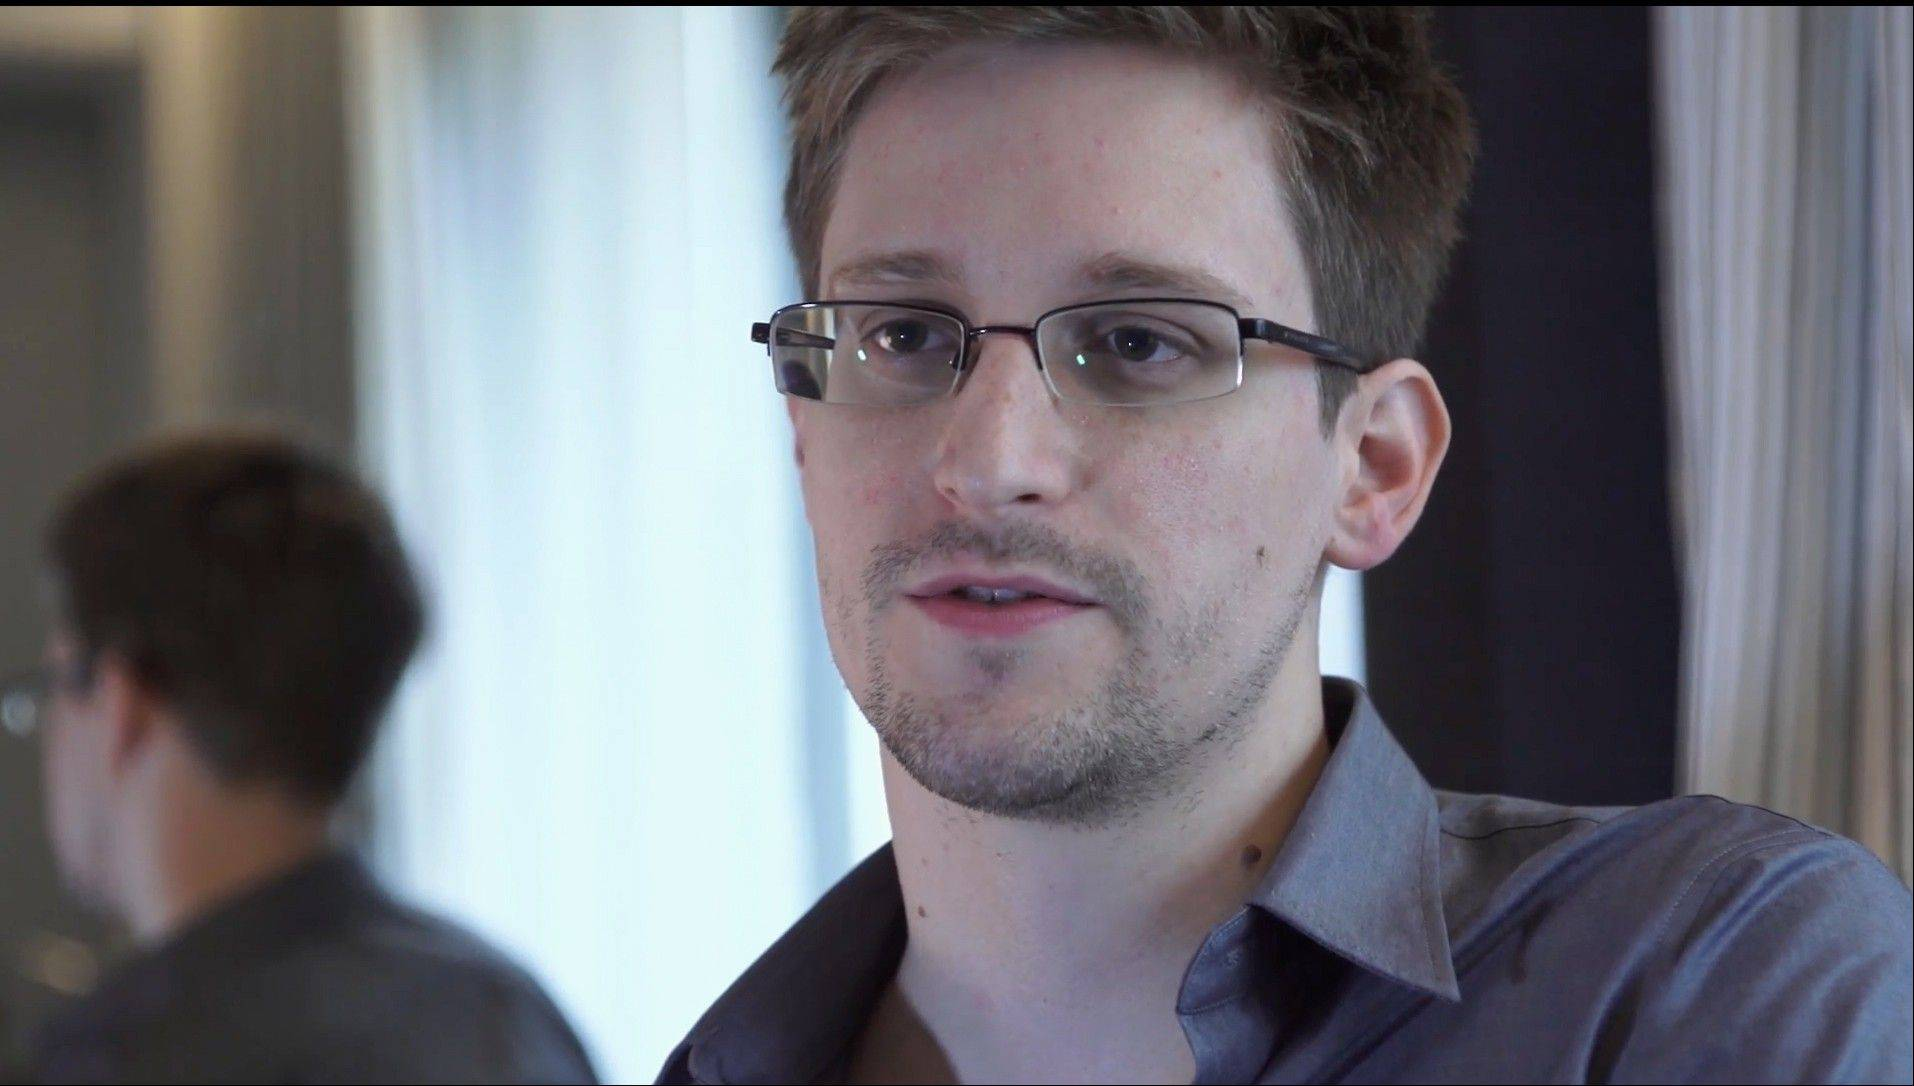 National Security Agency leaker Edward Snowden will speak directly to Britain in a televised Christmas message, stressing the importance of privacy and urging an end to government surveillance.